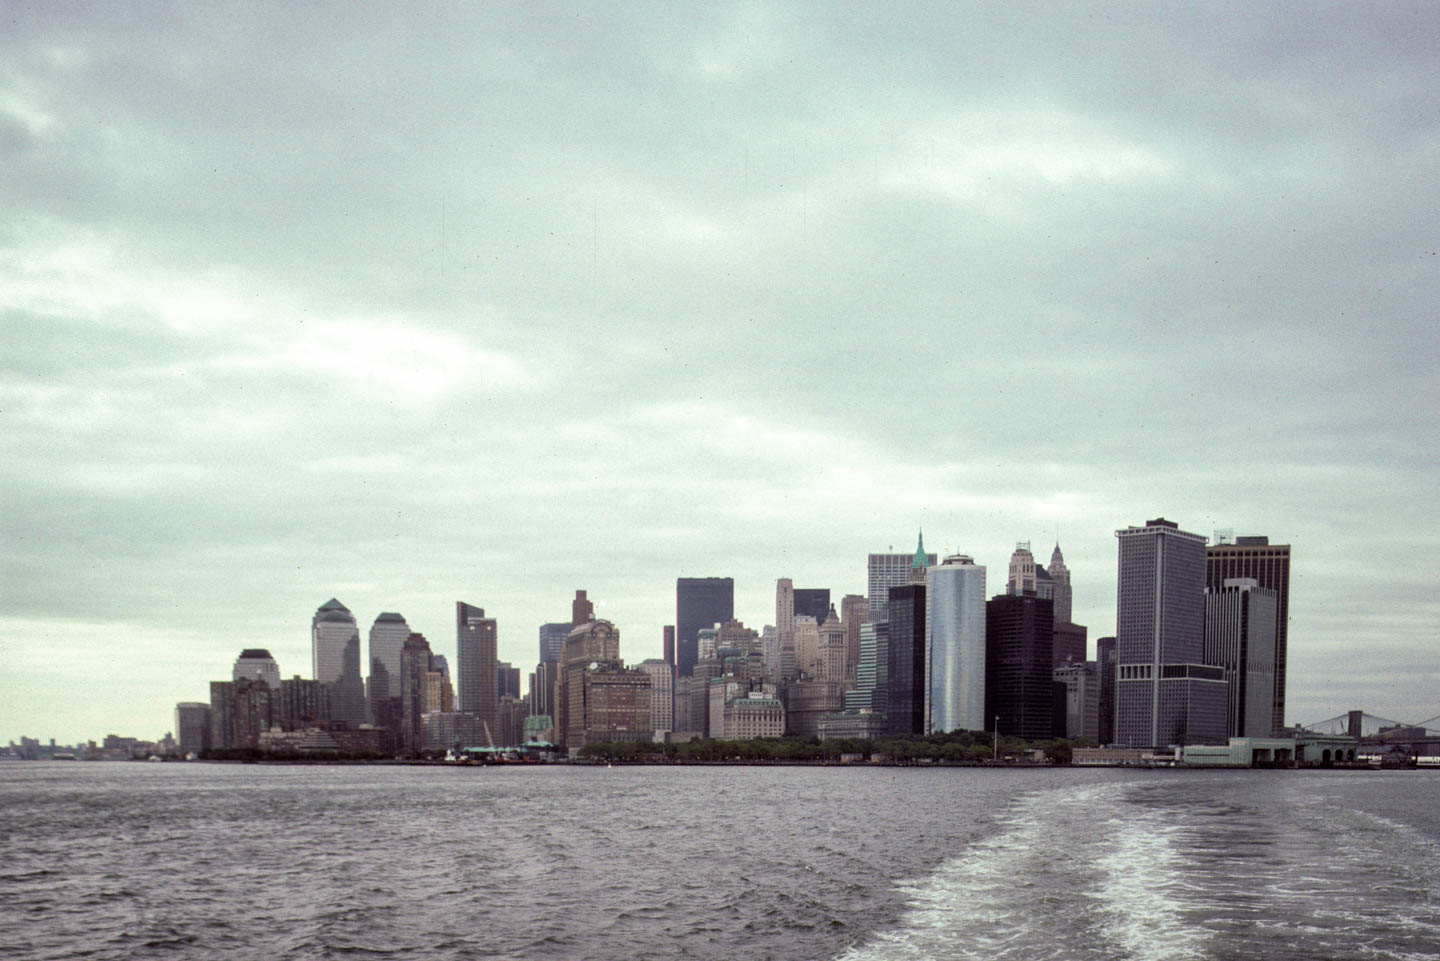 1-ViewofWTCareafromtheStatenIslandFerry2001_